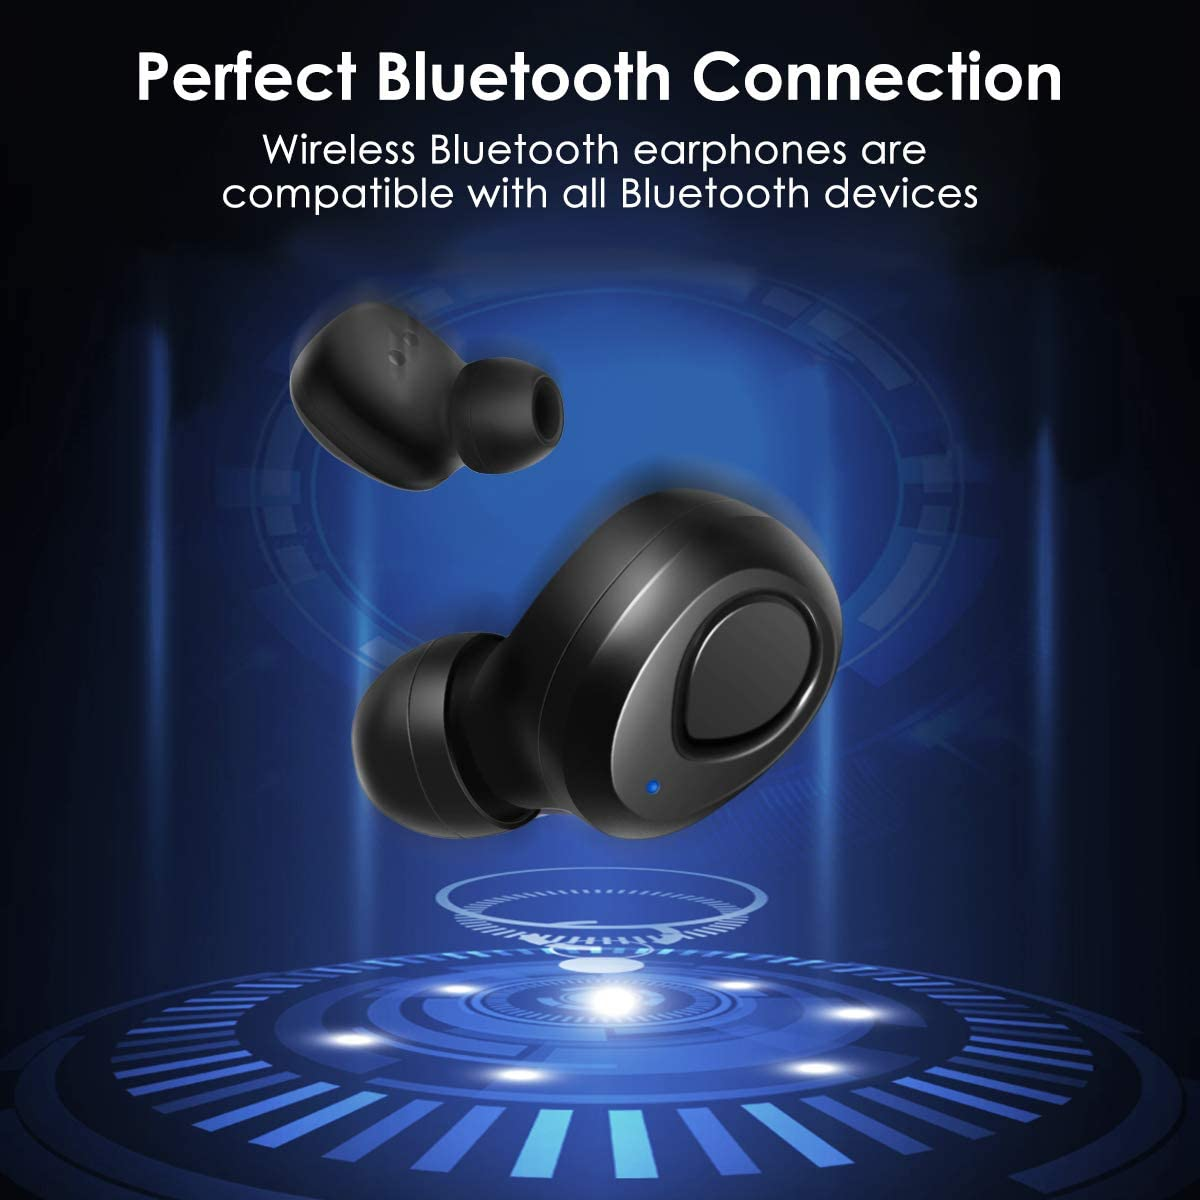 Wireless Earbuds Bluetooth Headphones Stereo Earphone Cordless Sport Headsets Compatible with Microphone /& Charging Case for iPhone 8 X 7 7 Plus 6S 6S Plus